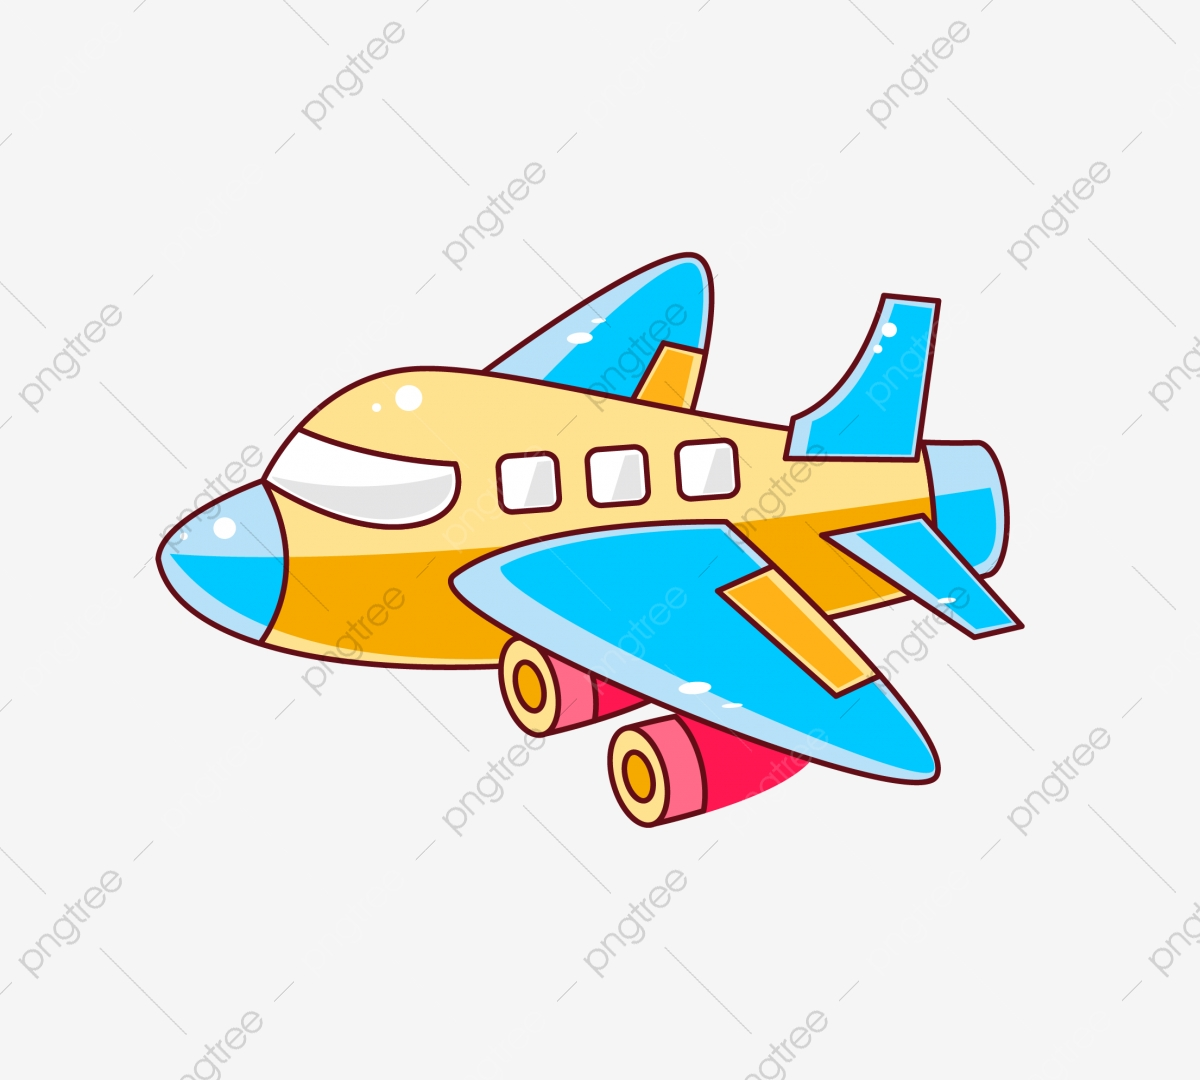 Cartoon Plane Png Vector Psd And Clipart With Transparent Background For Free Download Pngtree